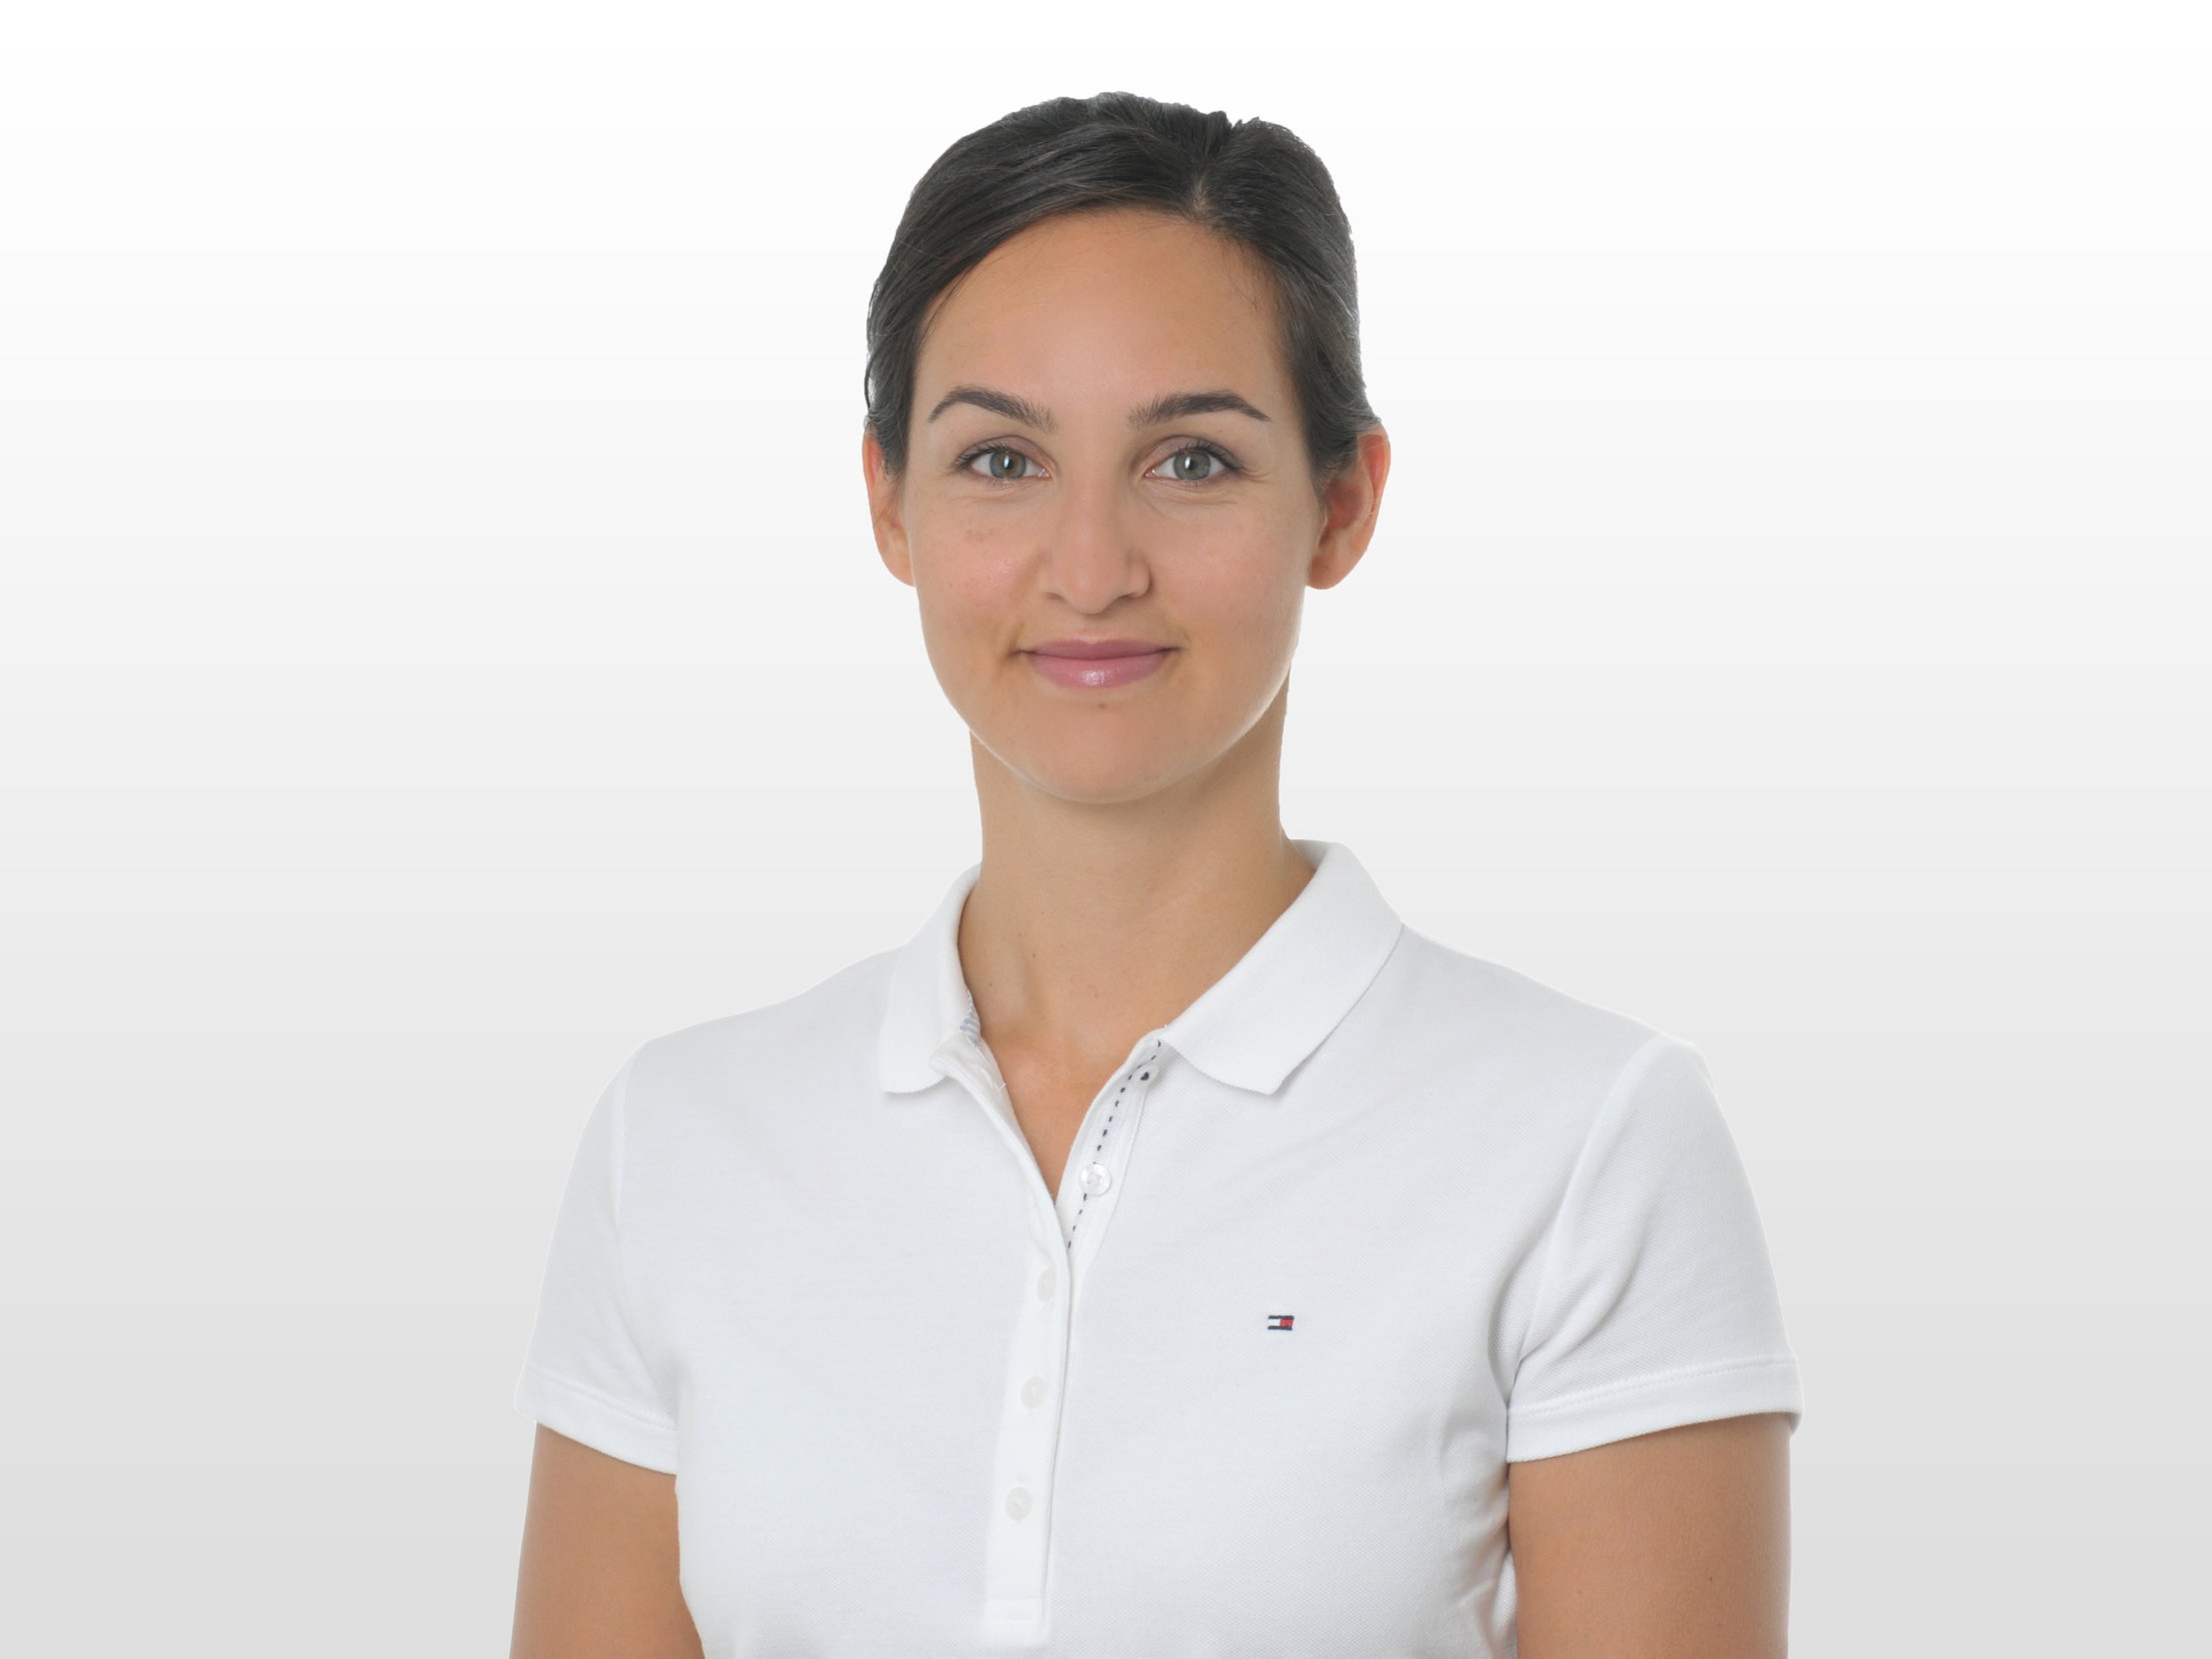 About Betina - Betina Villanueva grew up in Zurich and is a certified Physiotherapist, Sports Physiotherapist ESP and Trigger Point / Dry Needling Therapist DVS®.Her professional experience includes working for the SportClinic Zurich, RehaZentrum Wald and Spital Uster, chiefly in the fields of internal medicine and musculoskeletal rehabilitation. Betina's current focus is on providing conservative and post-operative physiotherapy to treat orthopedic conditions. She currently works for Physio & Co and Schulthess Clinic.Equipped with extensive work experience and expertise, combined with a high level of empathy and sensitivity, Betina always applies her skills in the best interest of her patients. She is committed to offering top-quality physiotherapy treatment that is tailored to each individual patient, thus enabling them to reinforce and enhance their own resources.Betina speaks German, Swiss-German, English and Spanish.